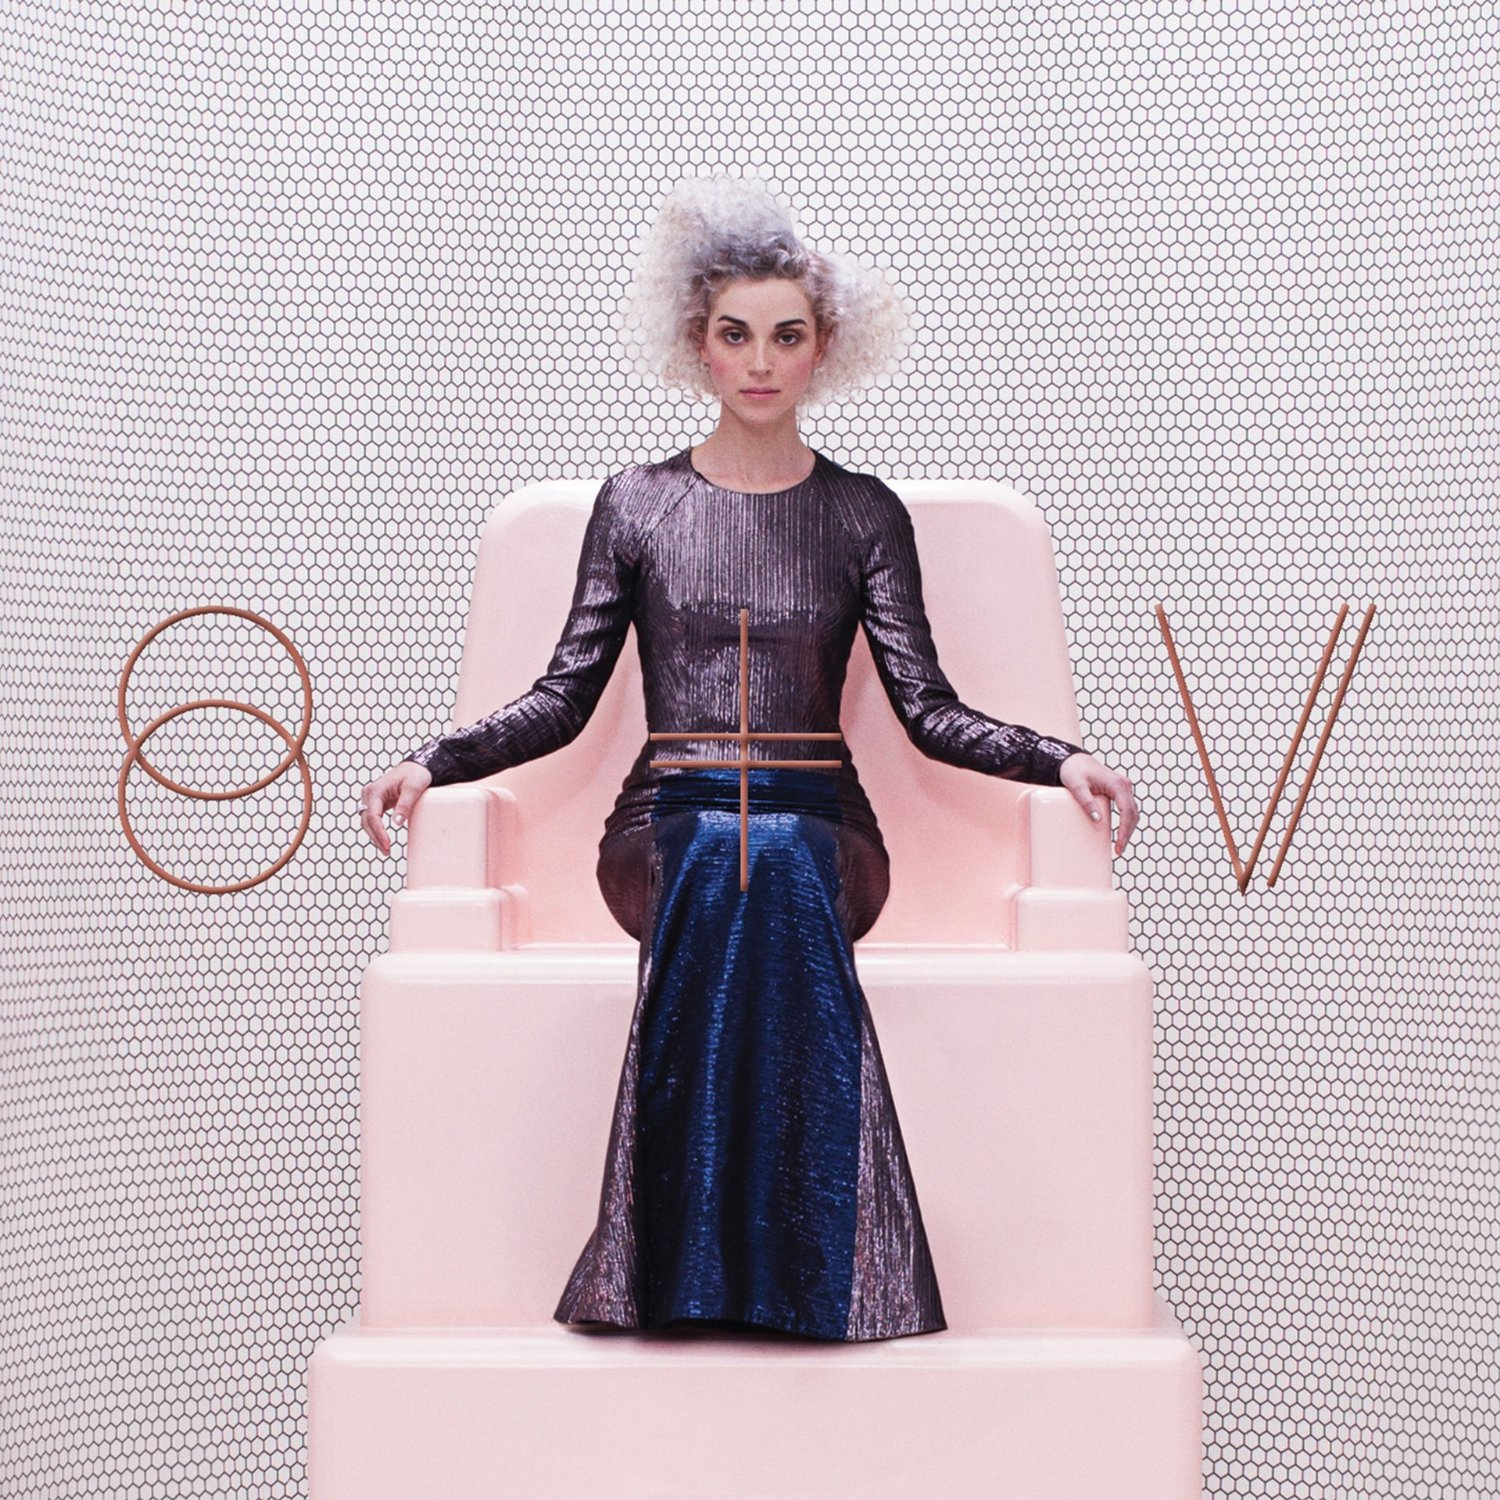 St. Vincent, Jack White and Tenacious D Take Home Awards at the 2015 Grammys